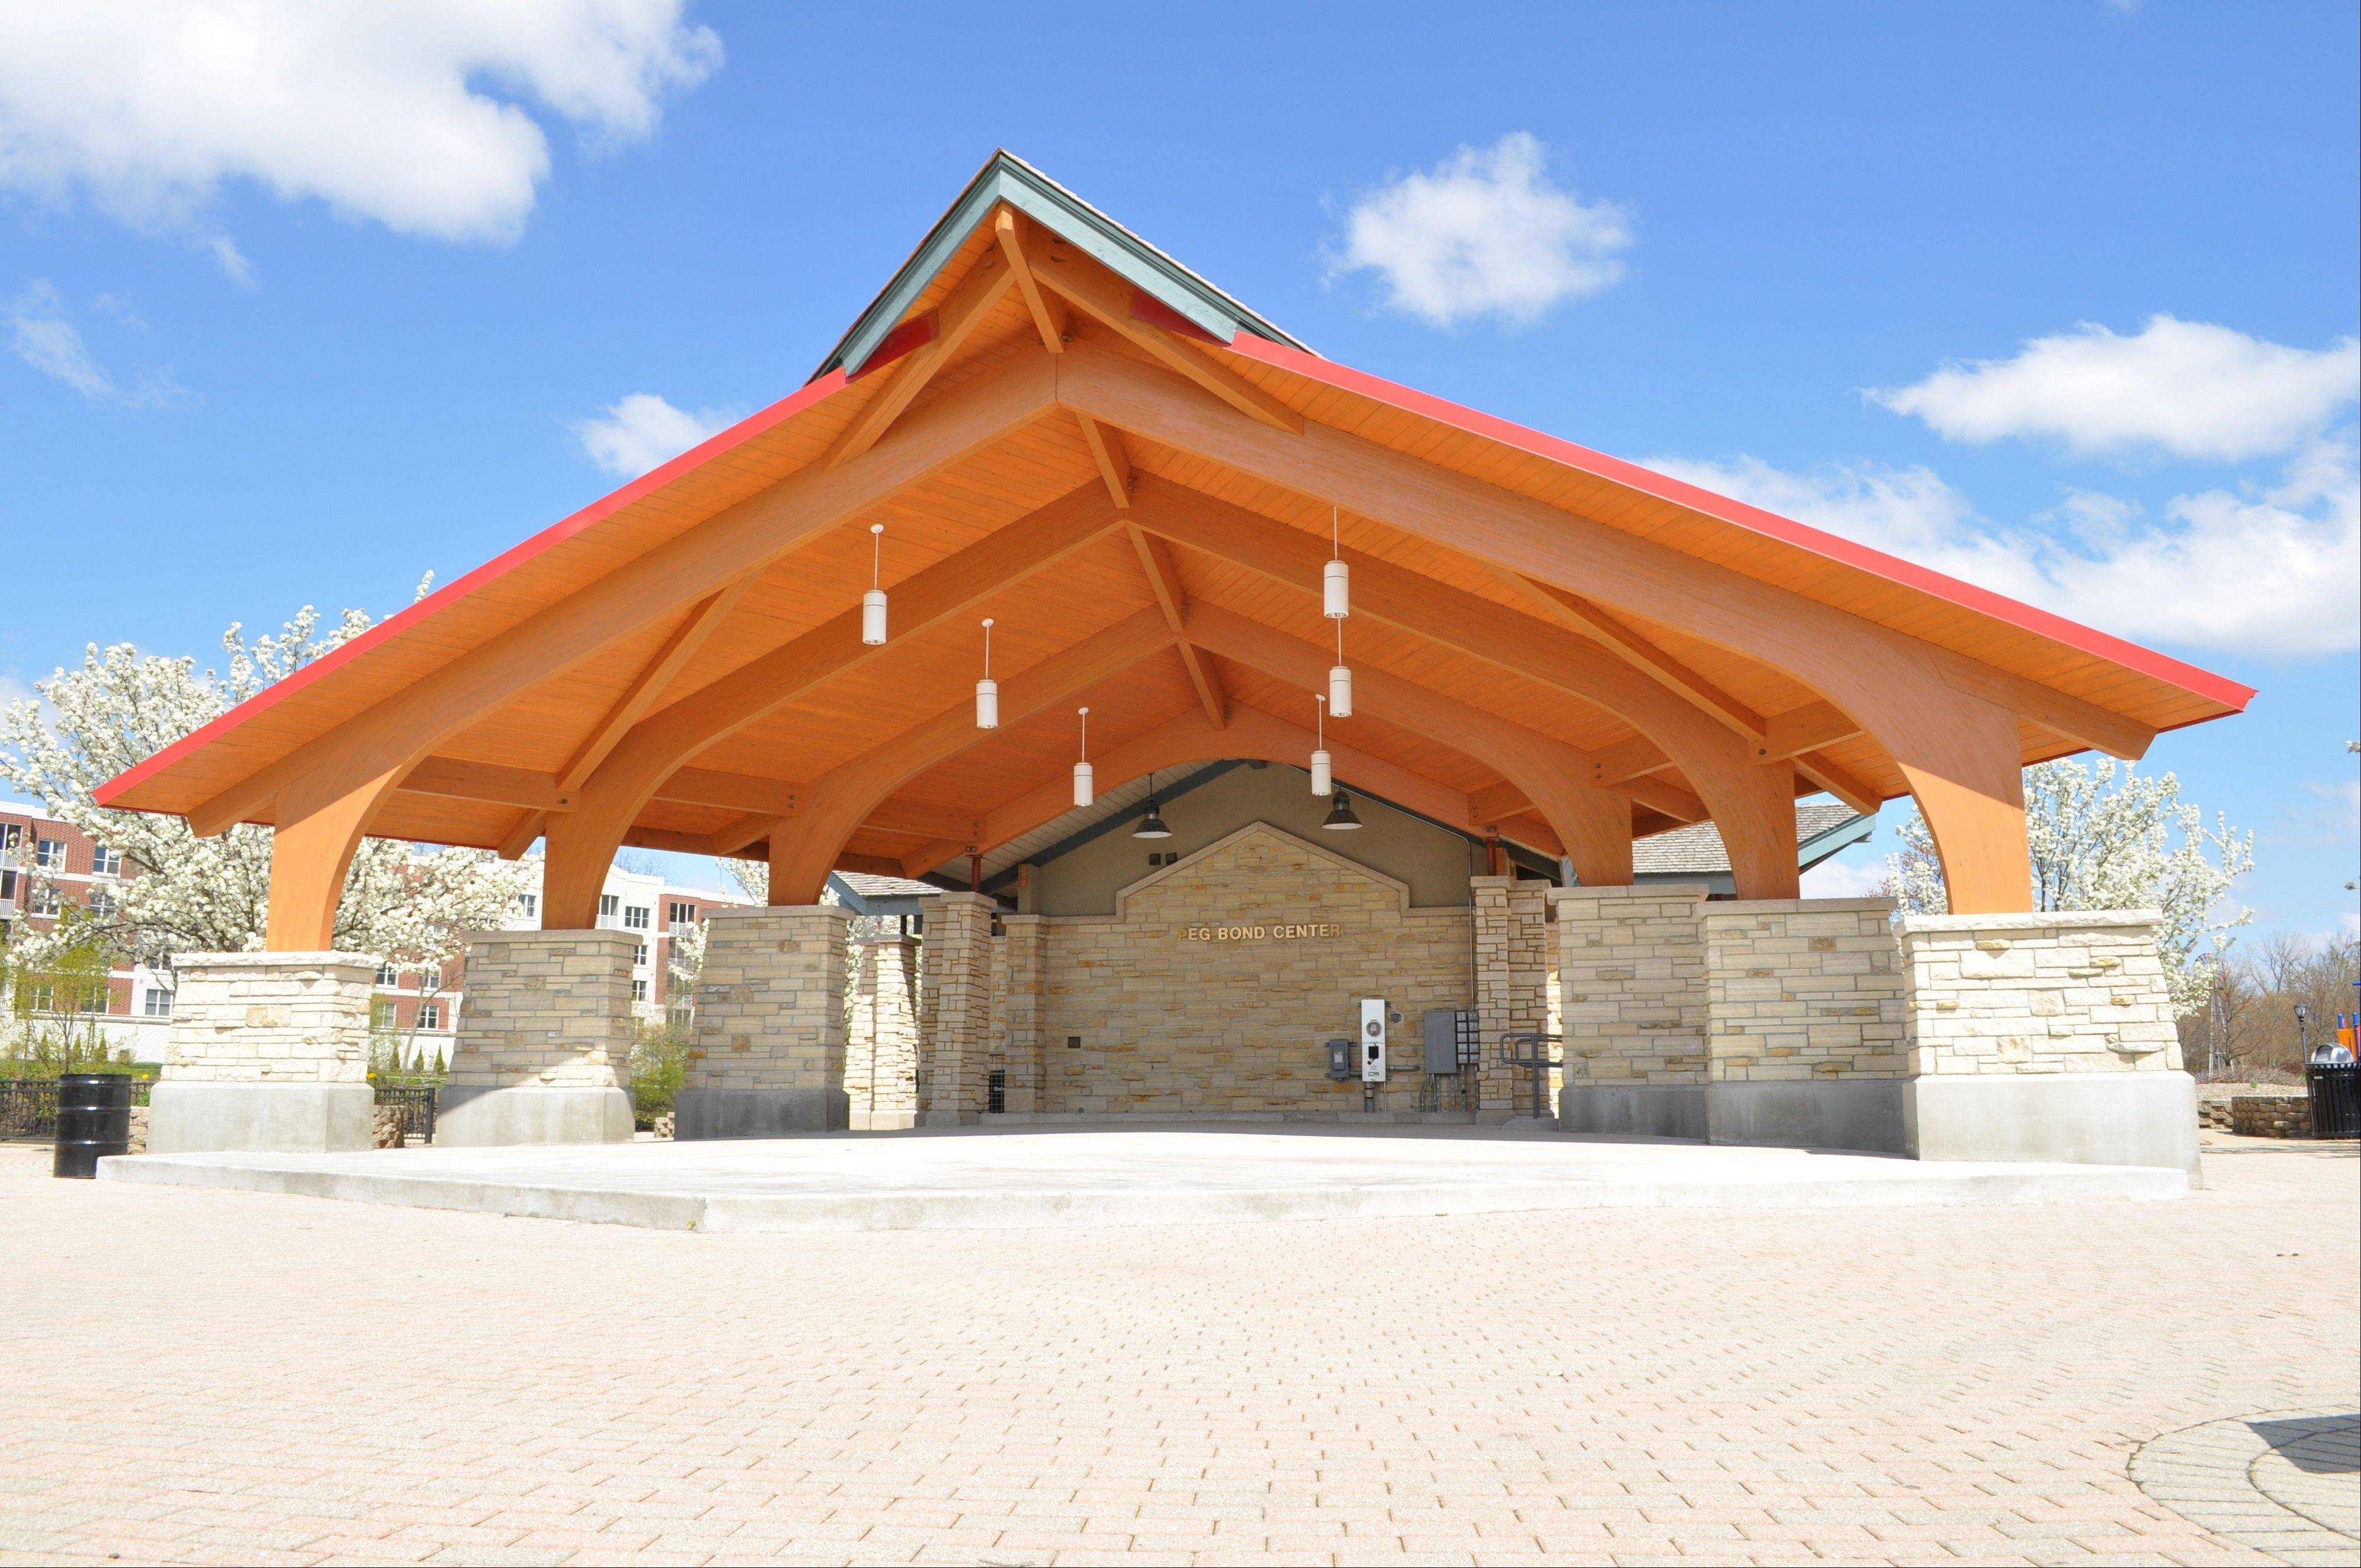 Celebrate the grand opening and dedication of the Peg Bond Center Performing Arts Pavilion in Batavia on Sunday, May 22.